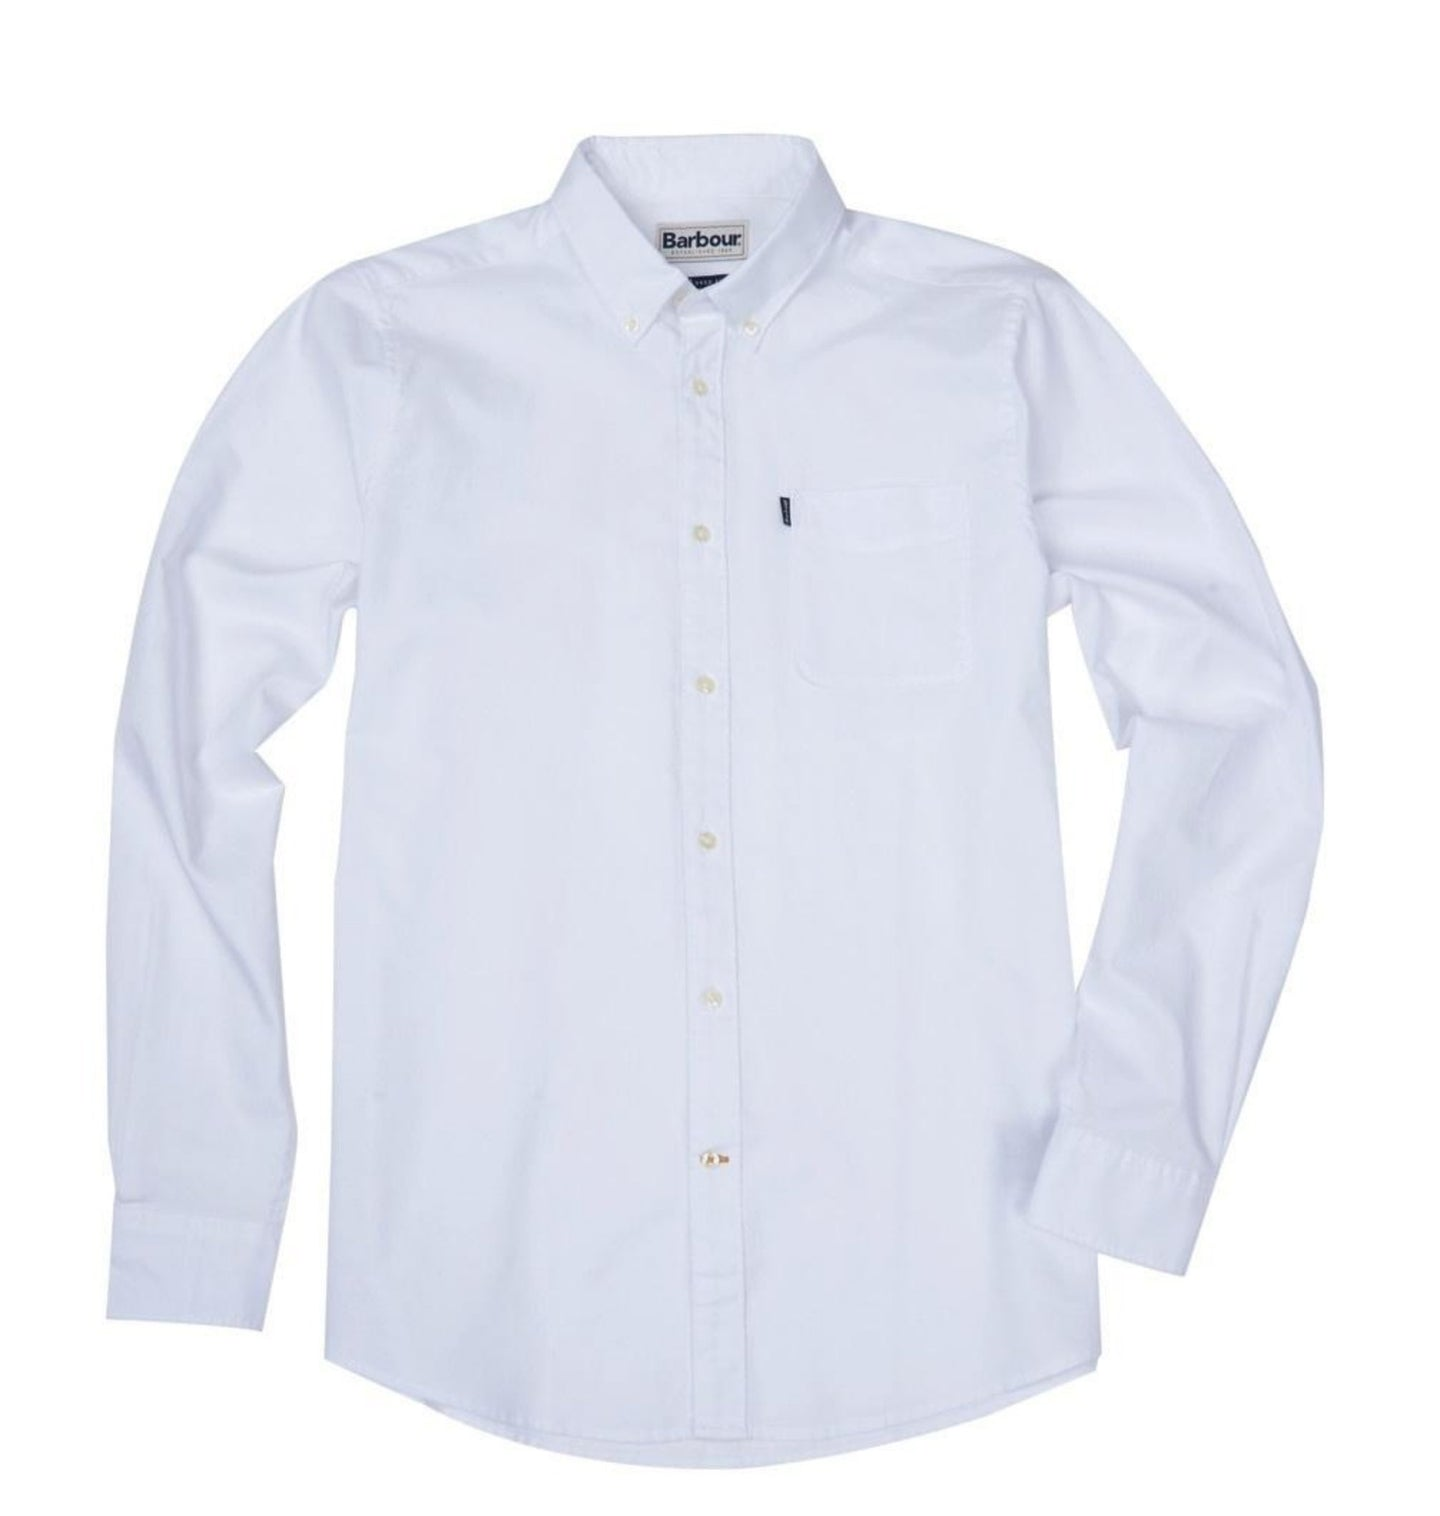 Barbour MEN - SHIRTS - BUTTON DOWNS Barbour, Endsleigh Oxford Tailored Shirt, White